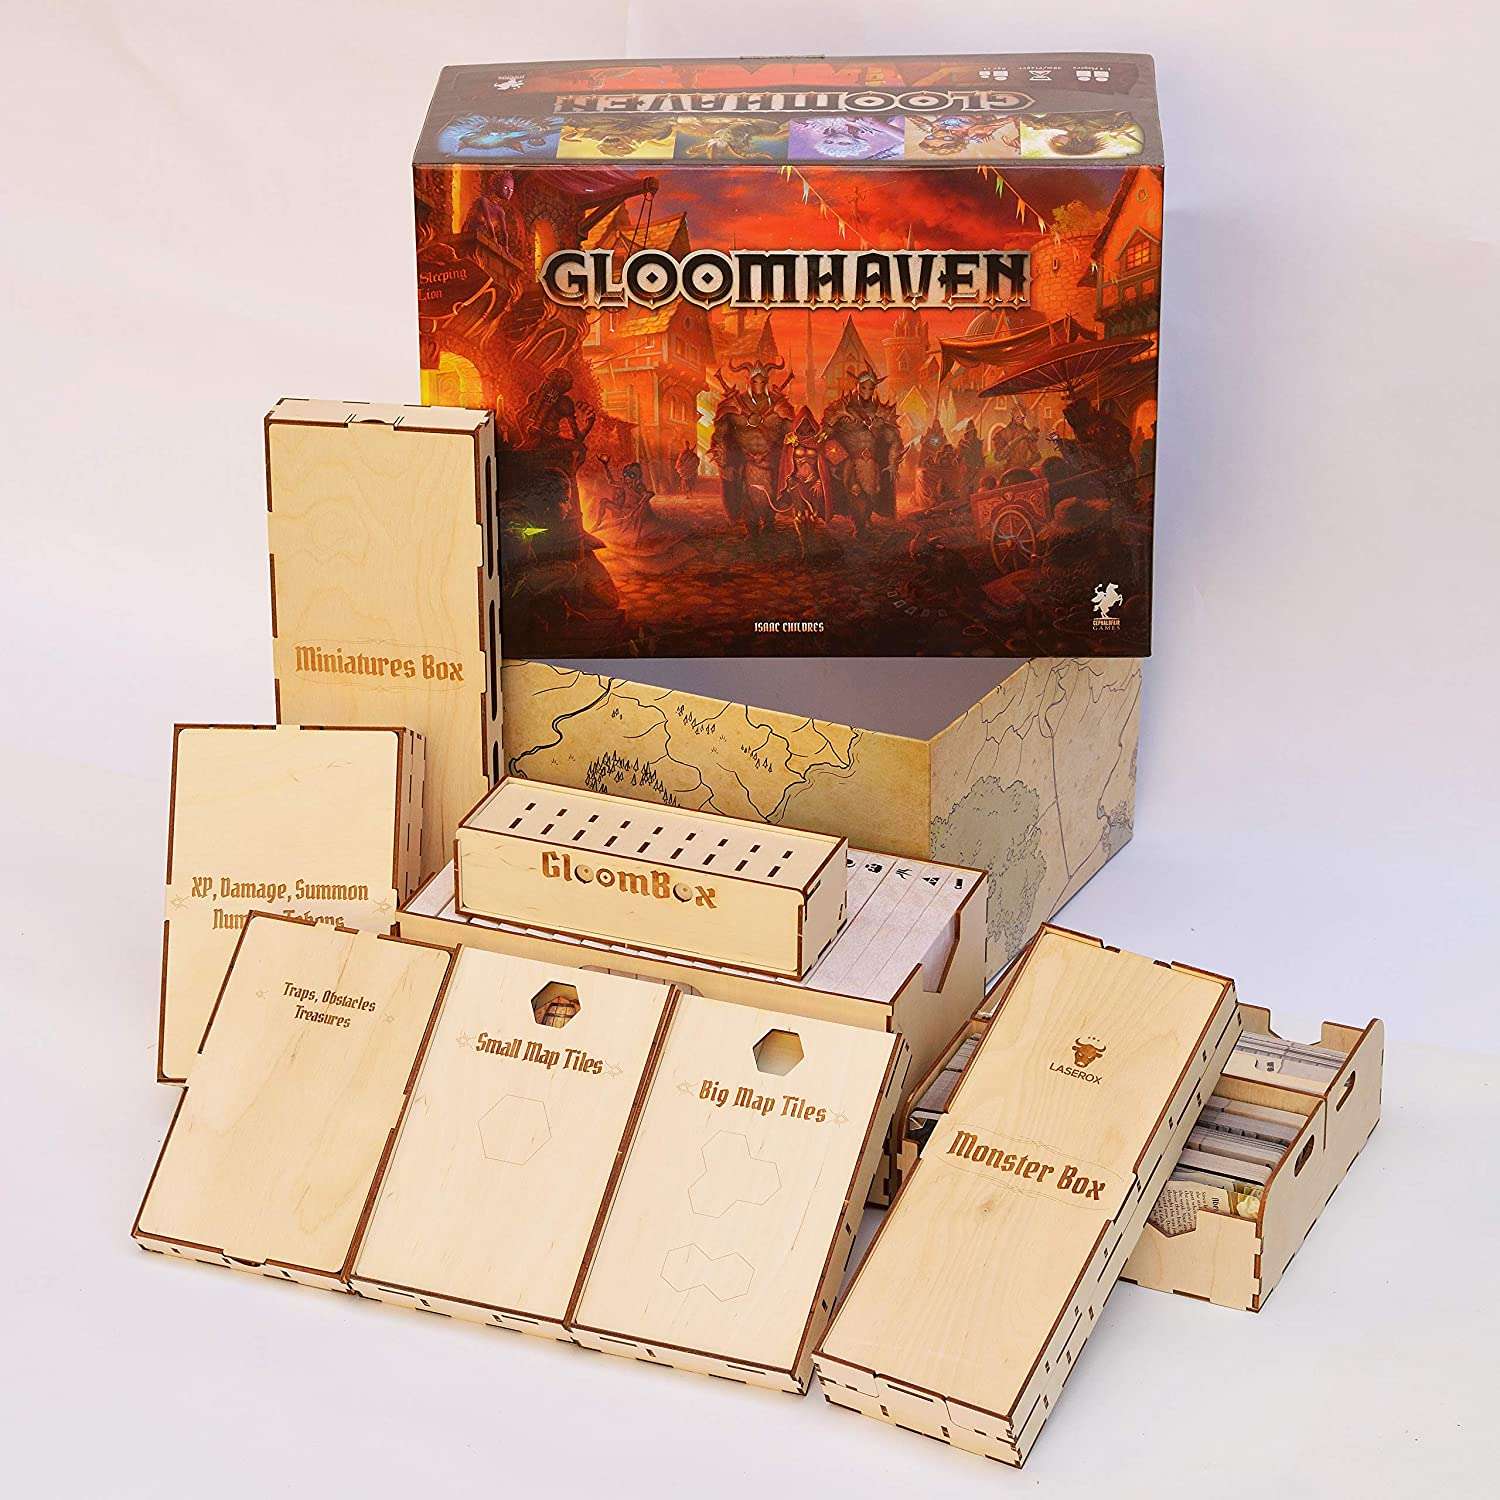 Laserox Gloombox Gloomhaven Insert by